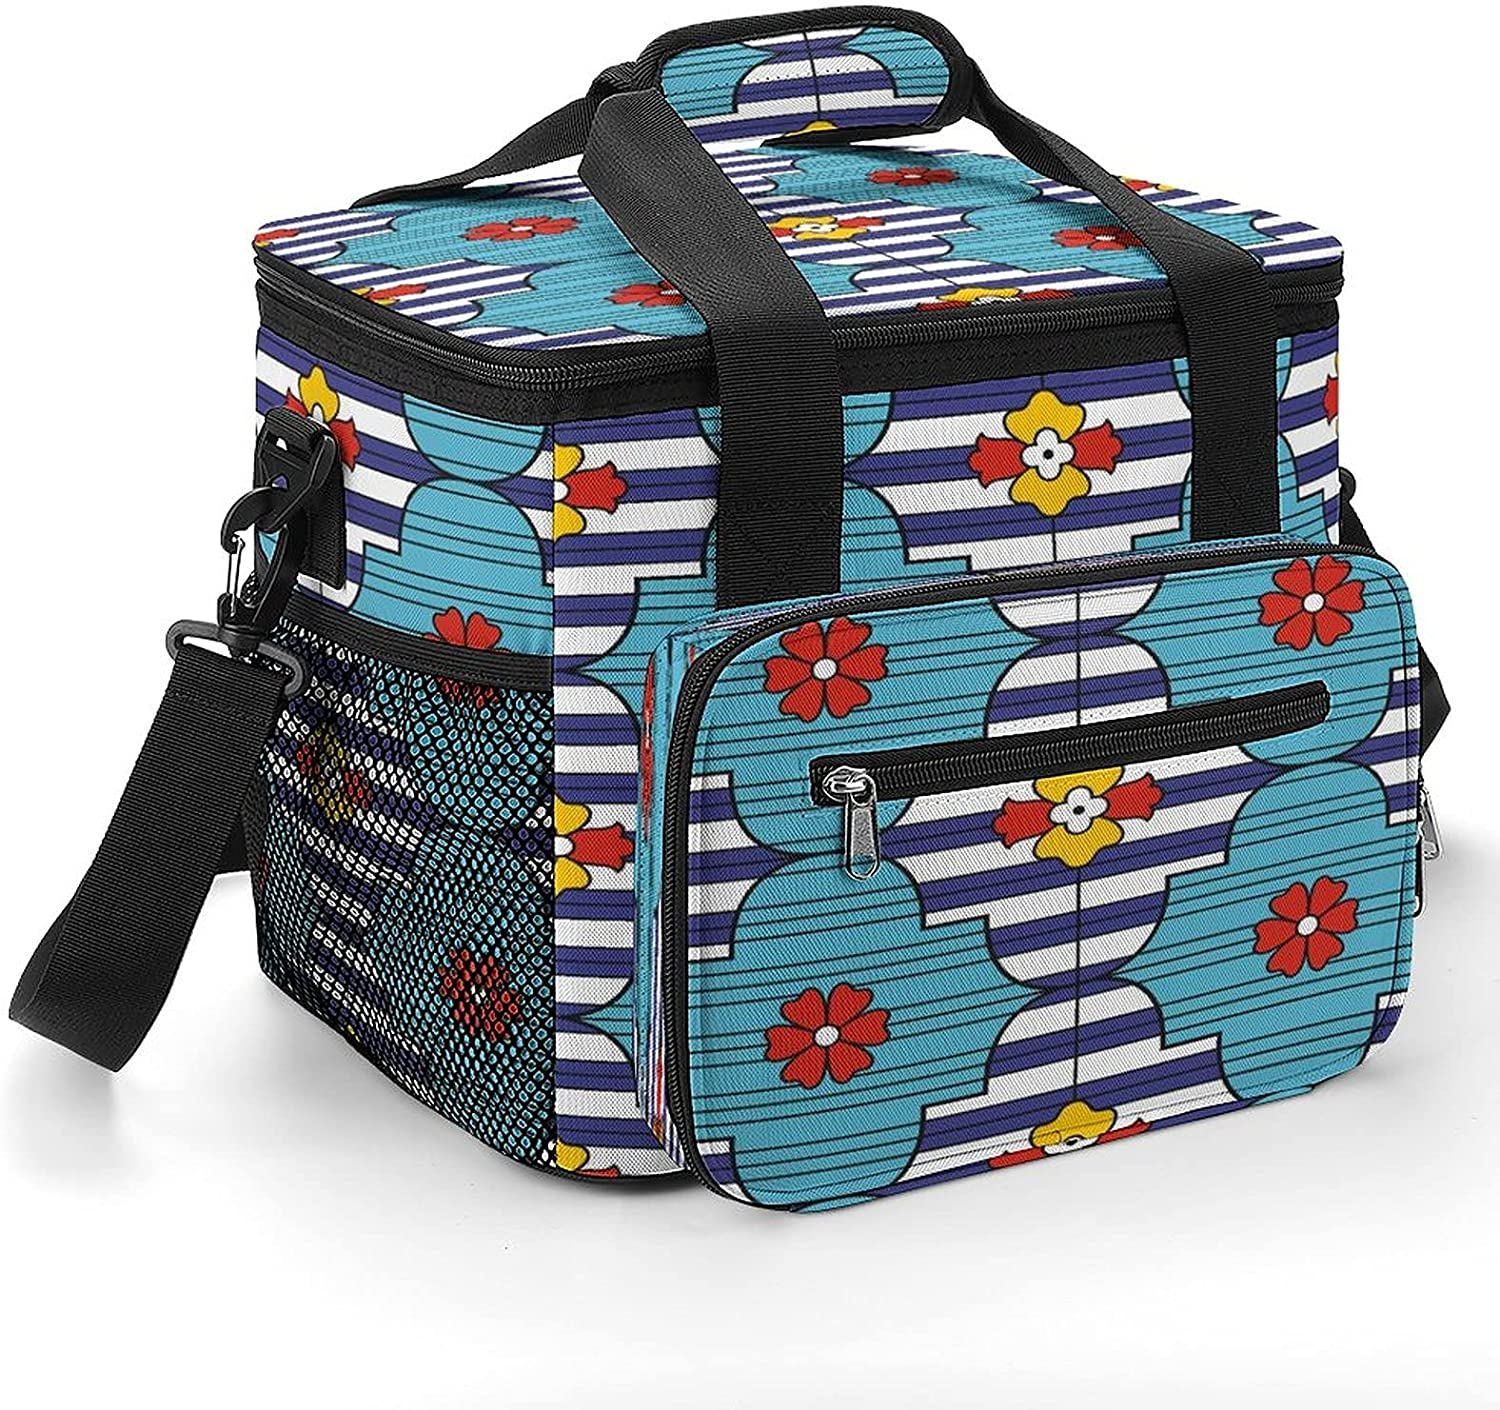 Bombing free shipping Beautiful Flower Excellence Combination Pattern 2 Bag Shoulder with Cooler